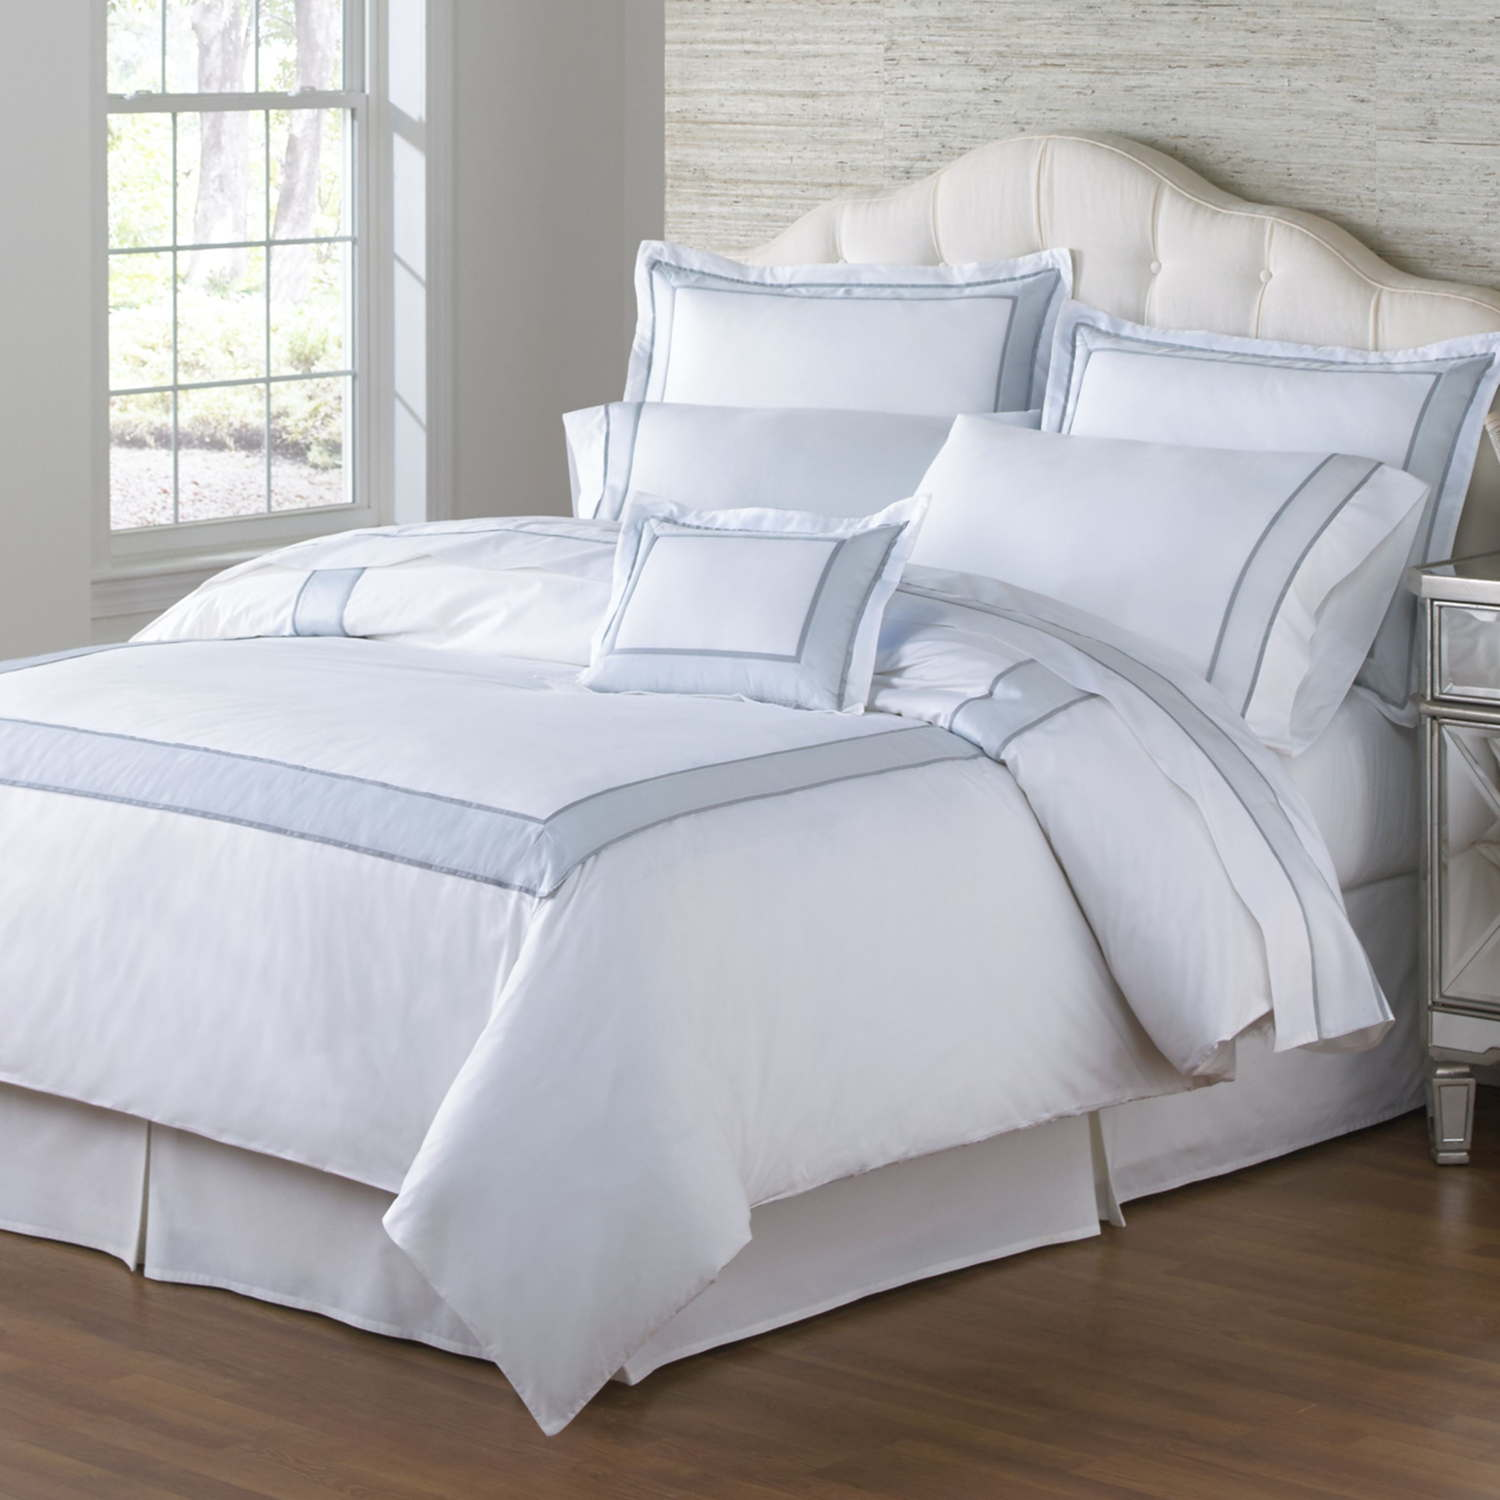 Traditions Linens Bedding Tupper Linen Collection